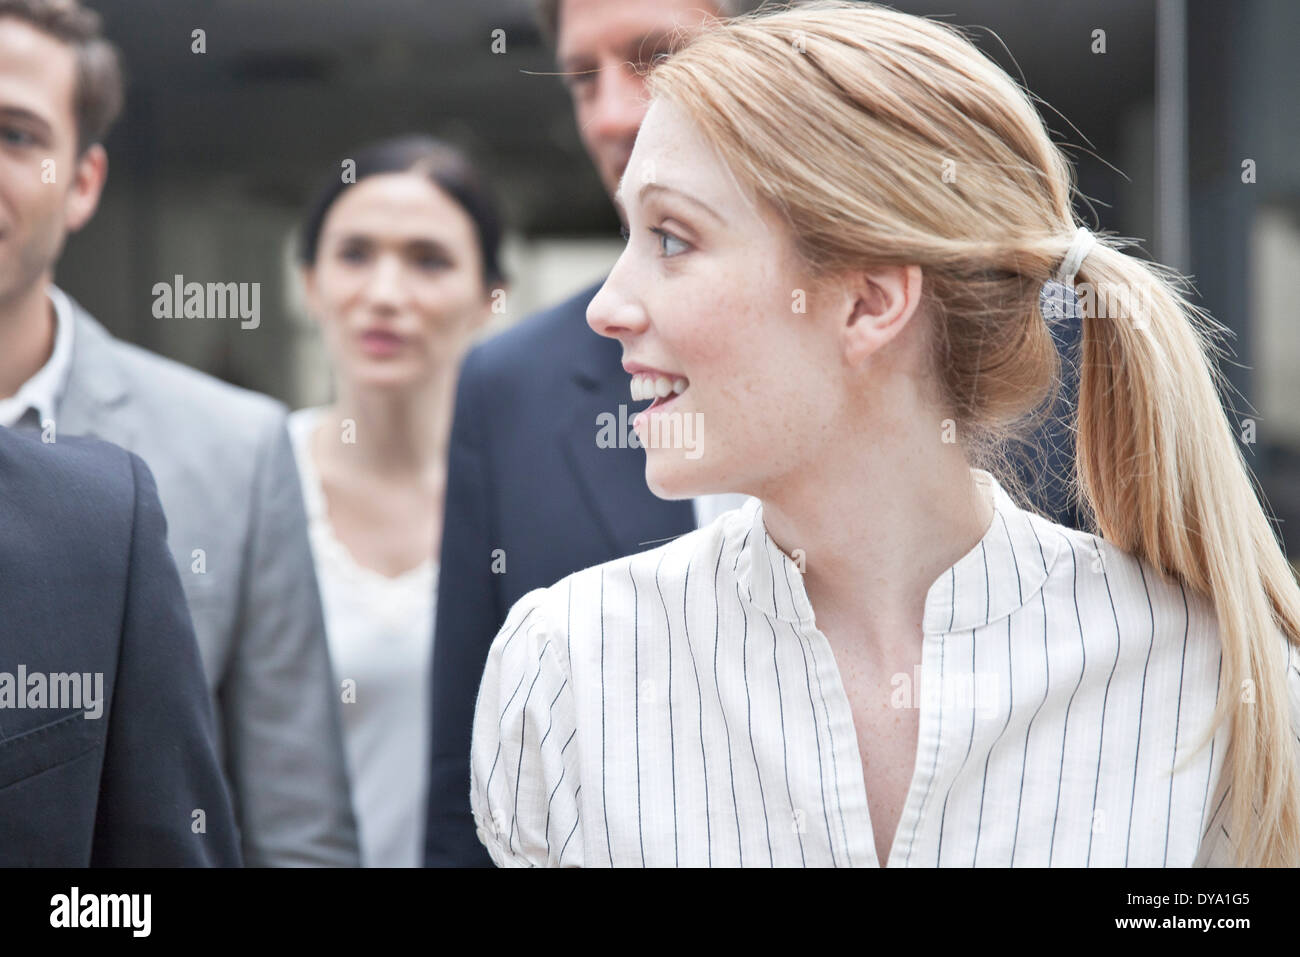 Businesswoman looking at associate - Stock Image